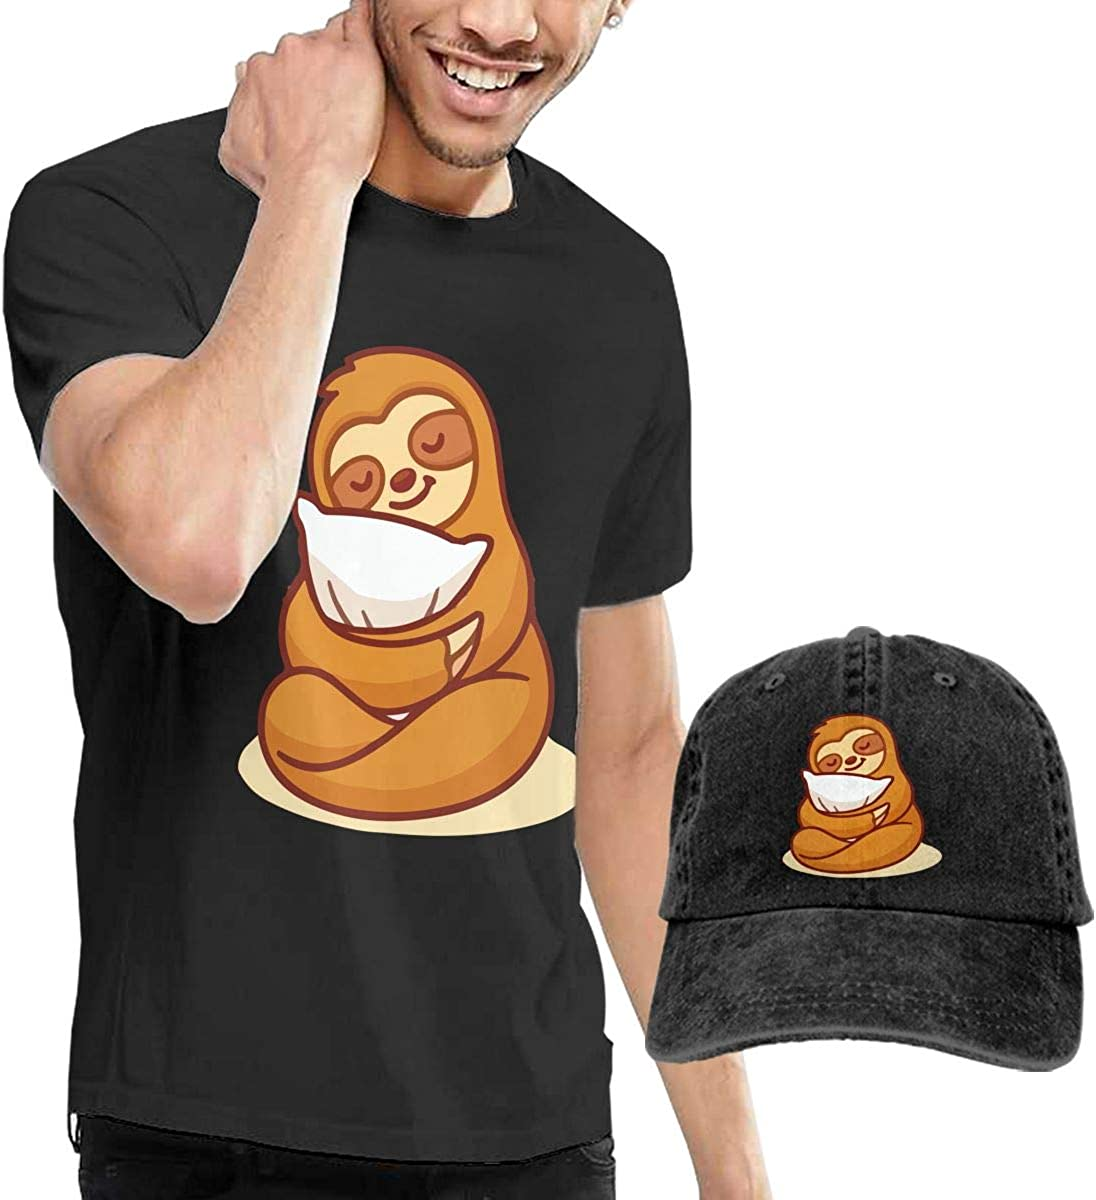 QqZXD Sleeping and Pillows Cute Sloth Fashion Mens T-Shirt and Hats Youth /& Adult T-Shirts Black